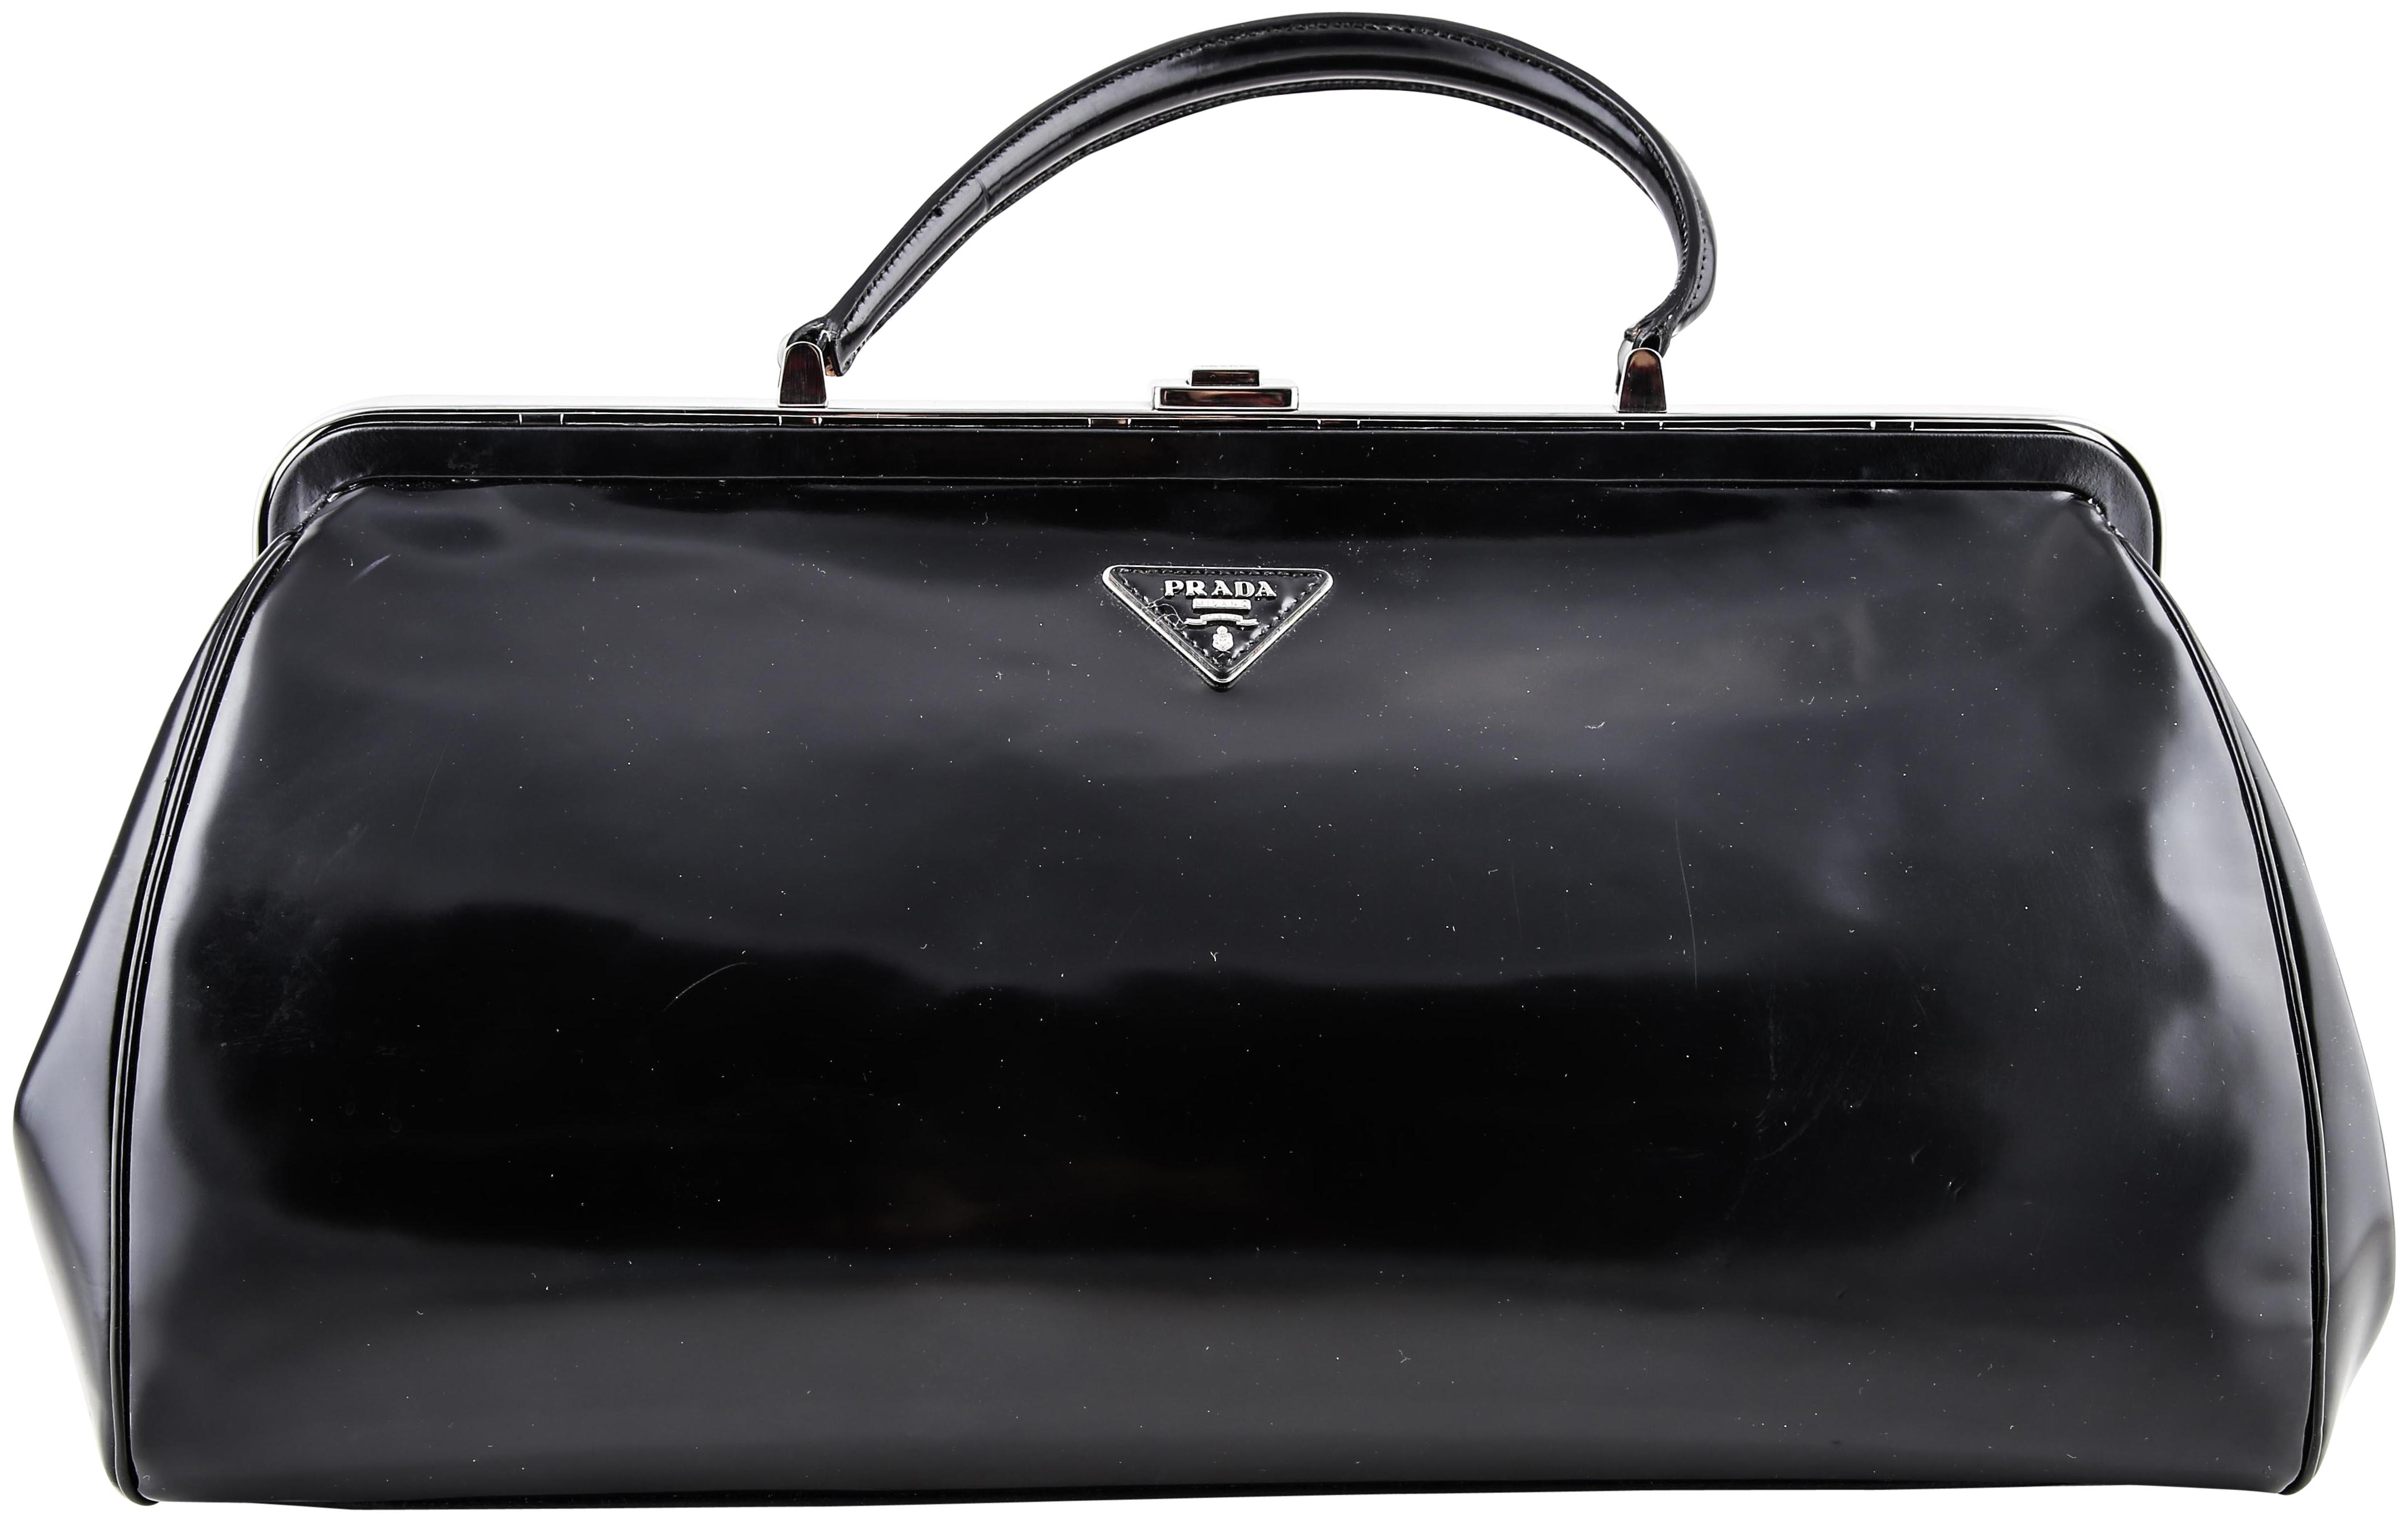 96ae95dcc97a28 clearance prada patent leather top handle bag black c3846 69547